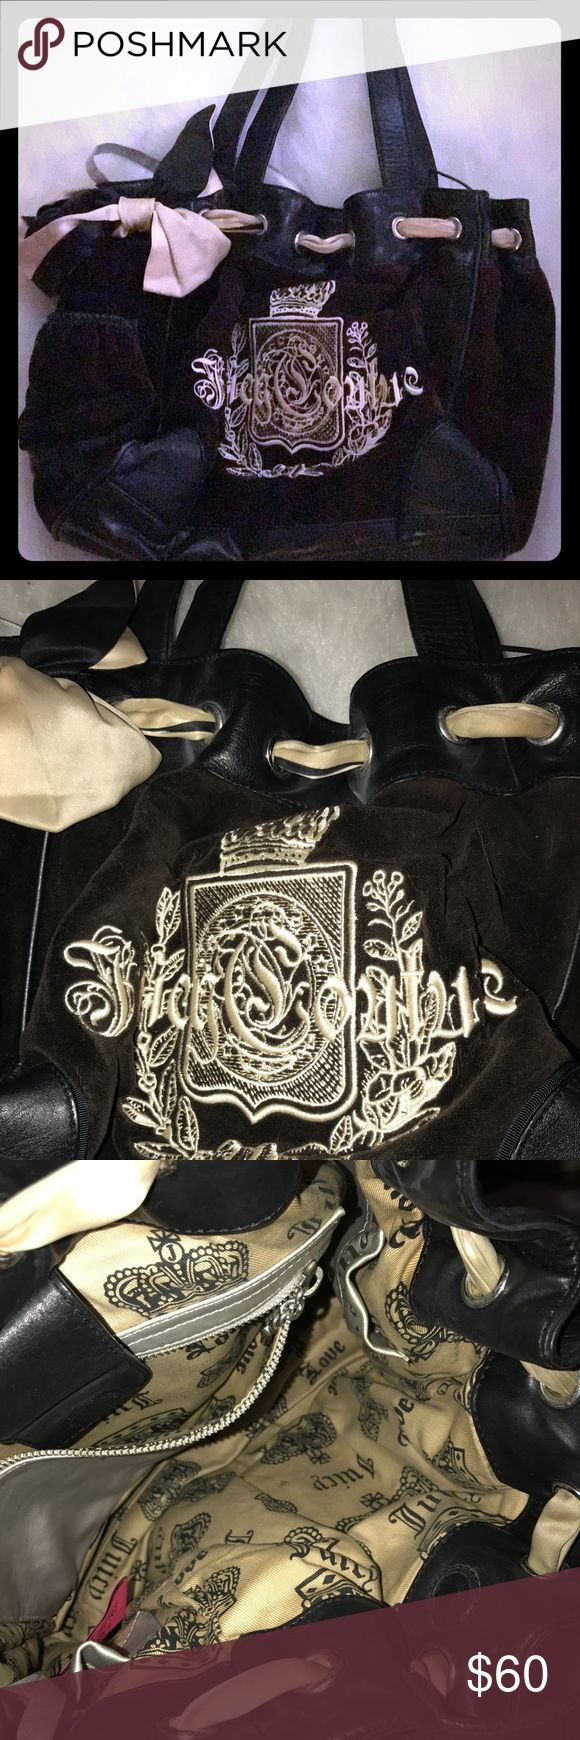 Authentic juicy couture handbag This handbag is so cute I used to love it so much I am cleaning out my closet someone should put it to good use Juicy Couture Bags Totes